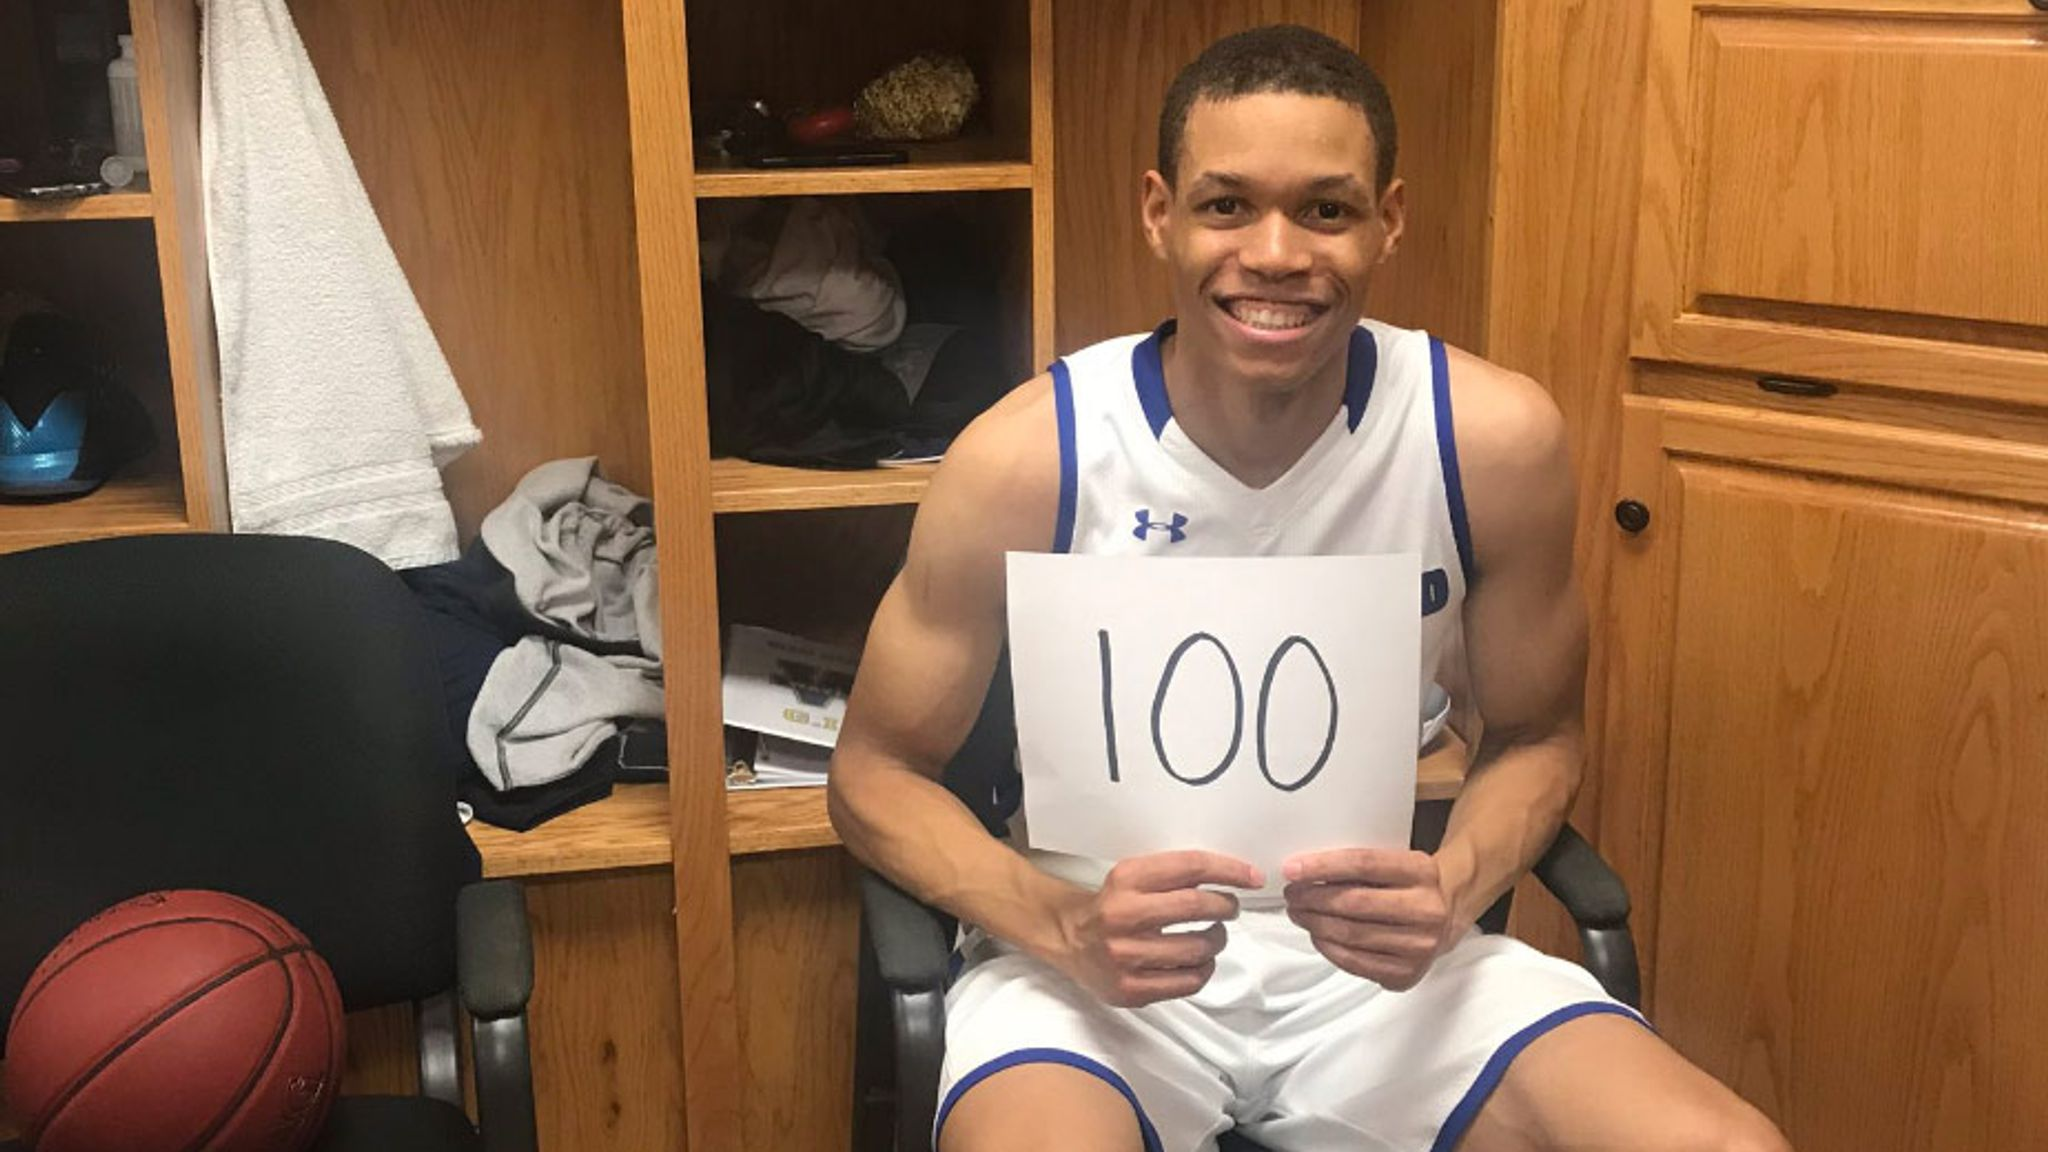 JJ Culver becomes fourth college player to score 100 points in a game